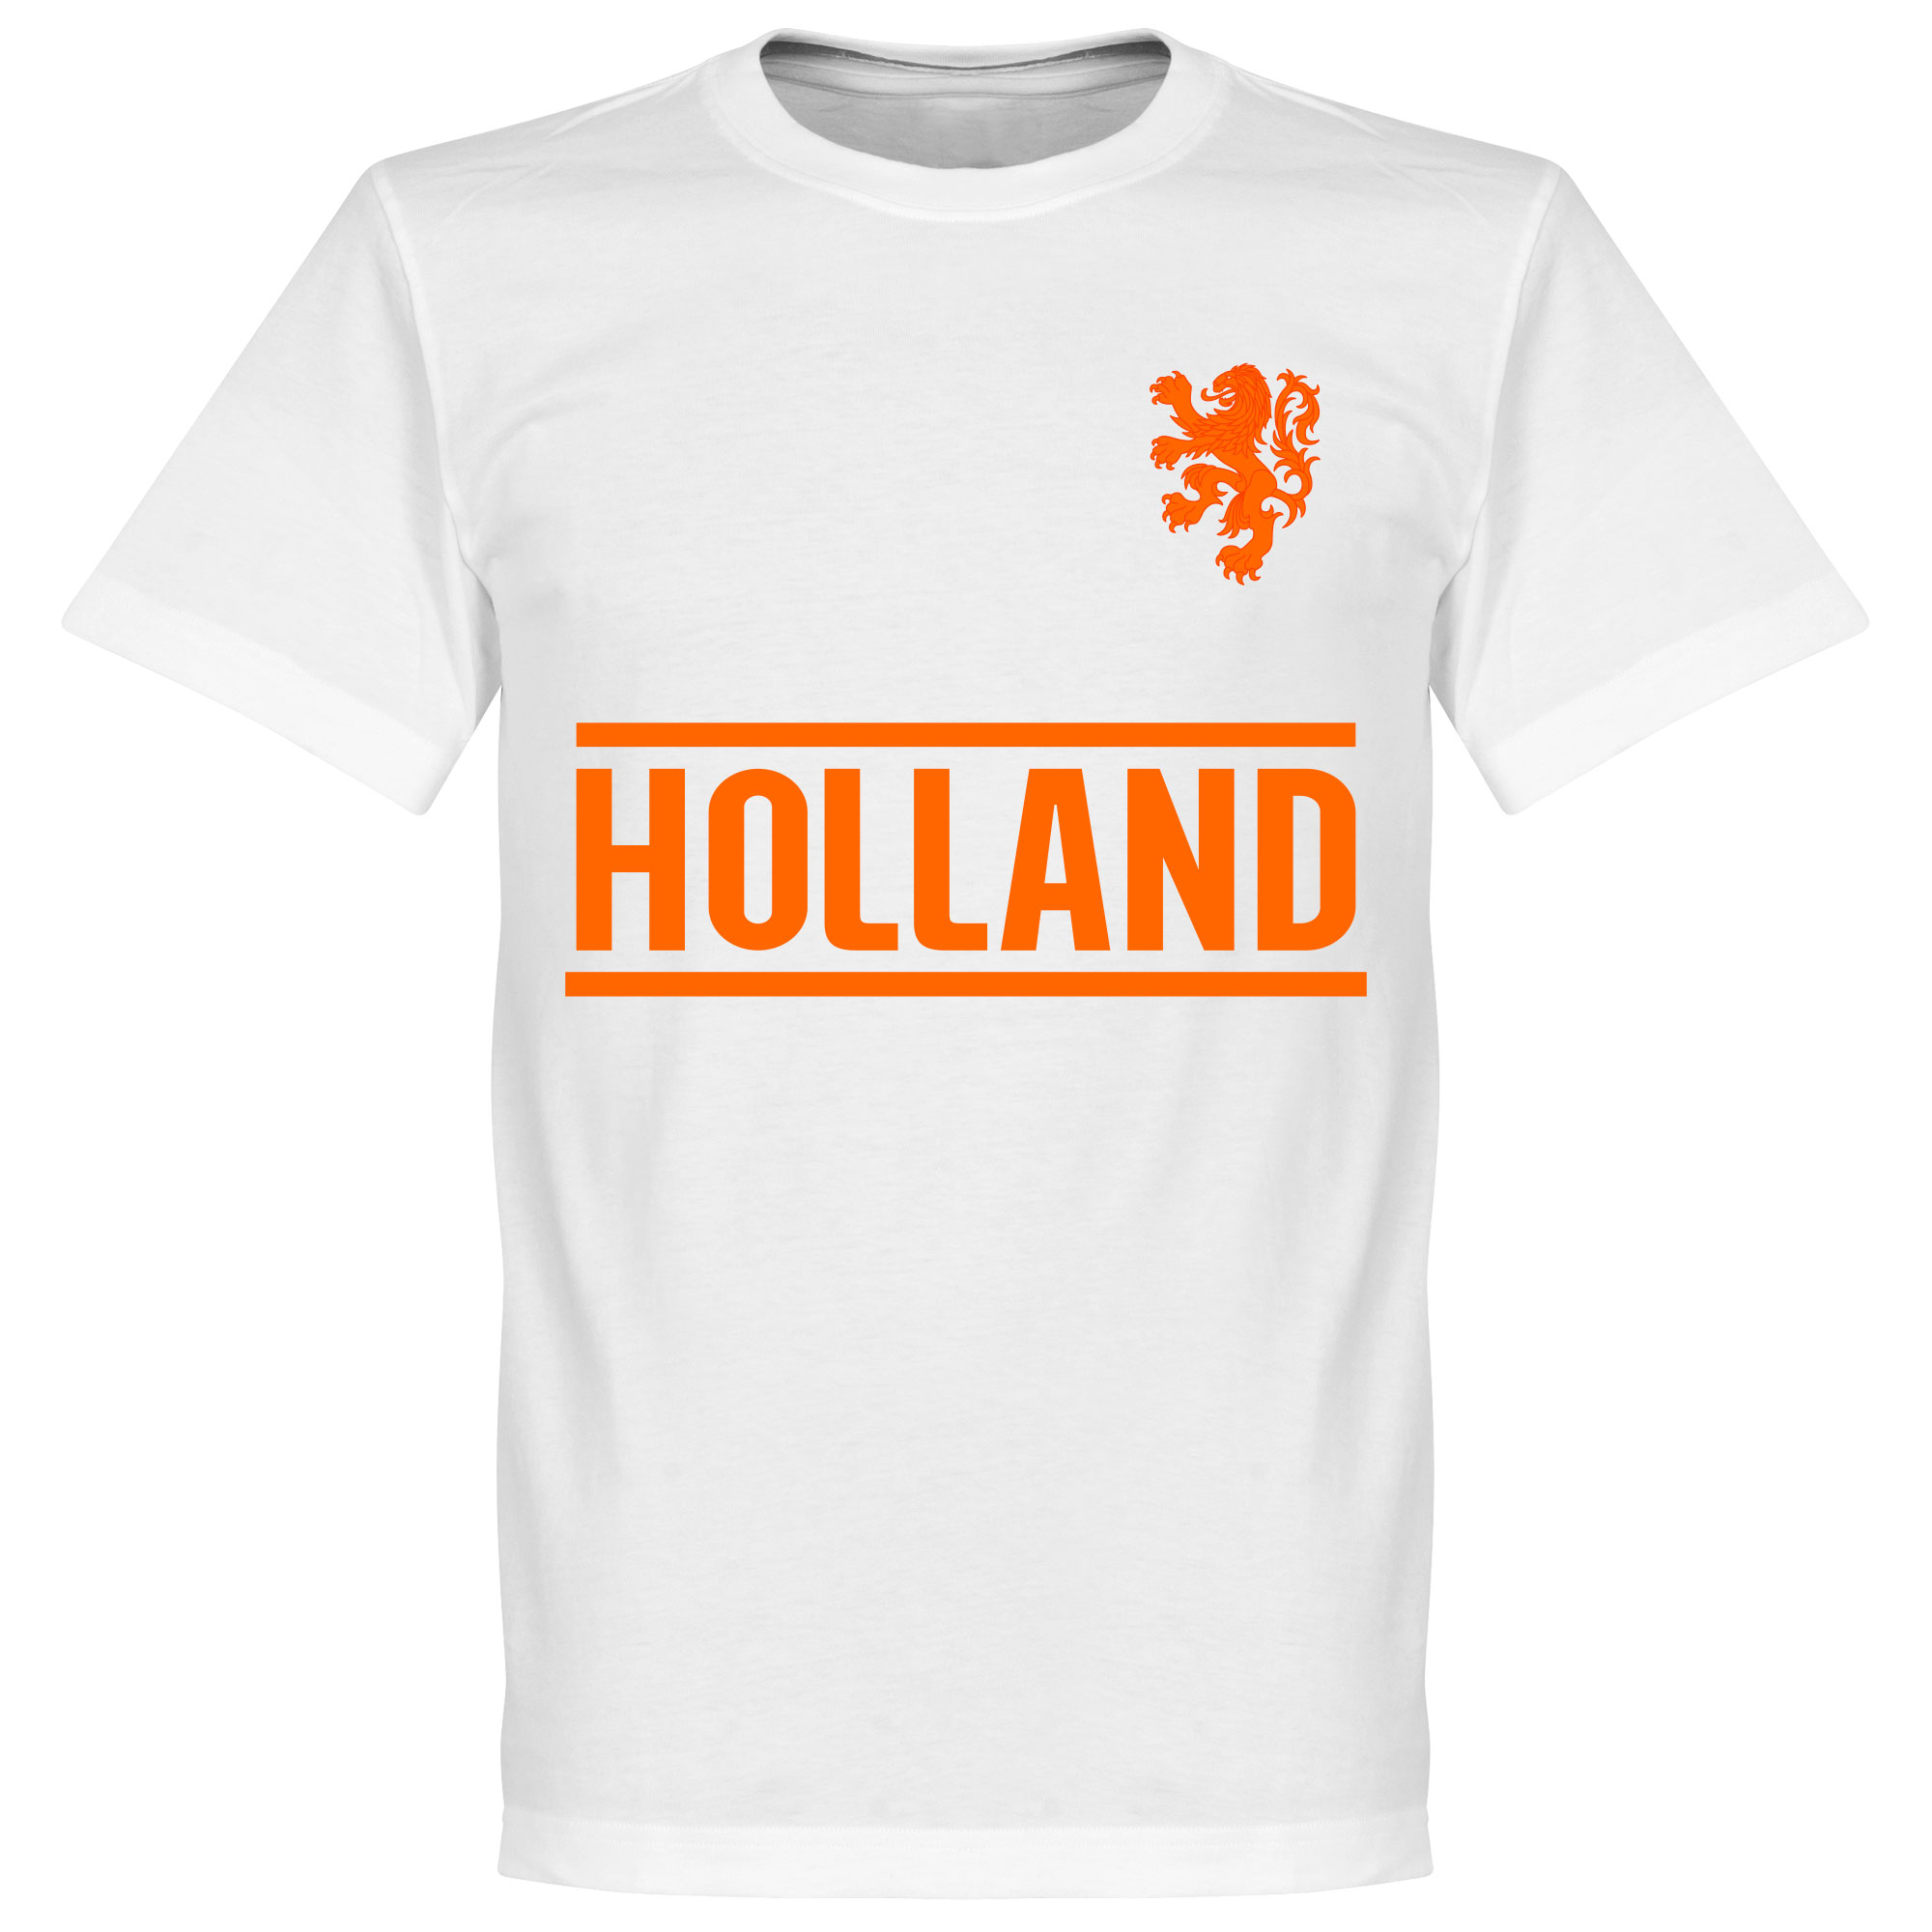 Holland Team Tee - White - XXXXL